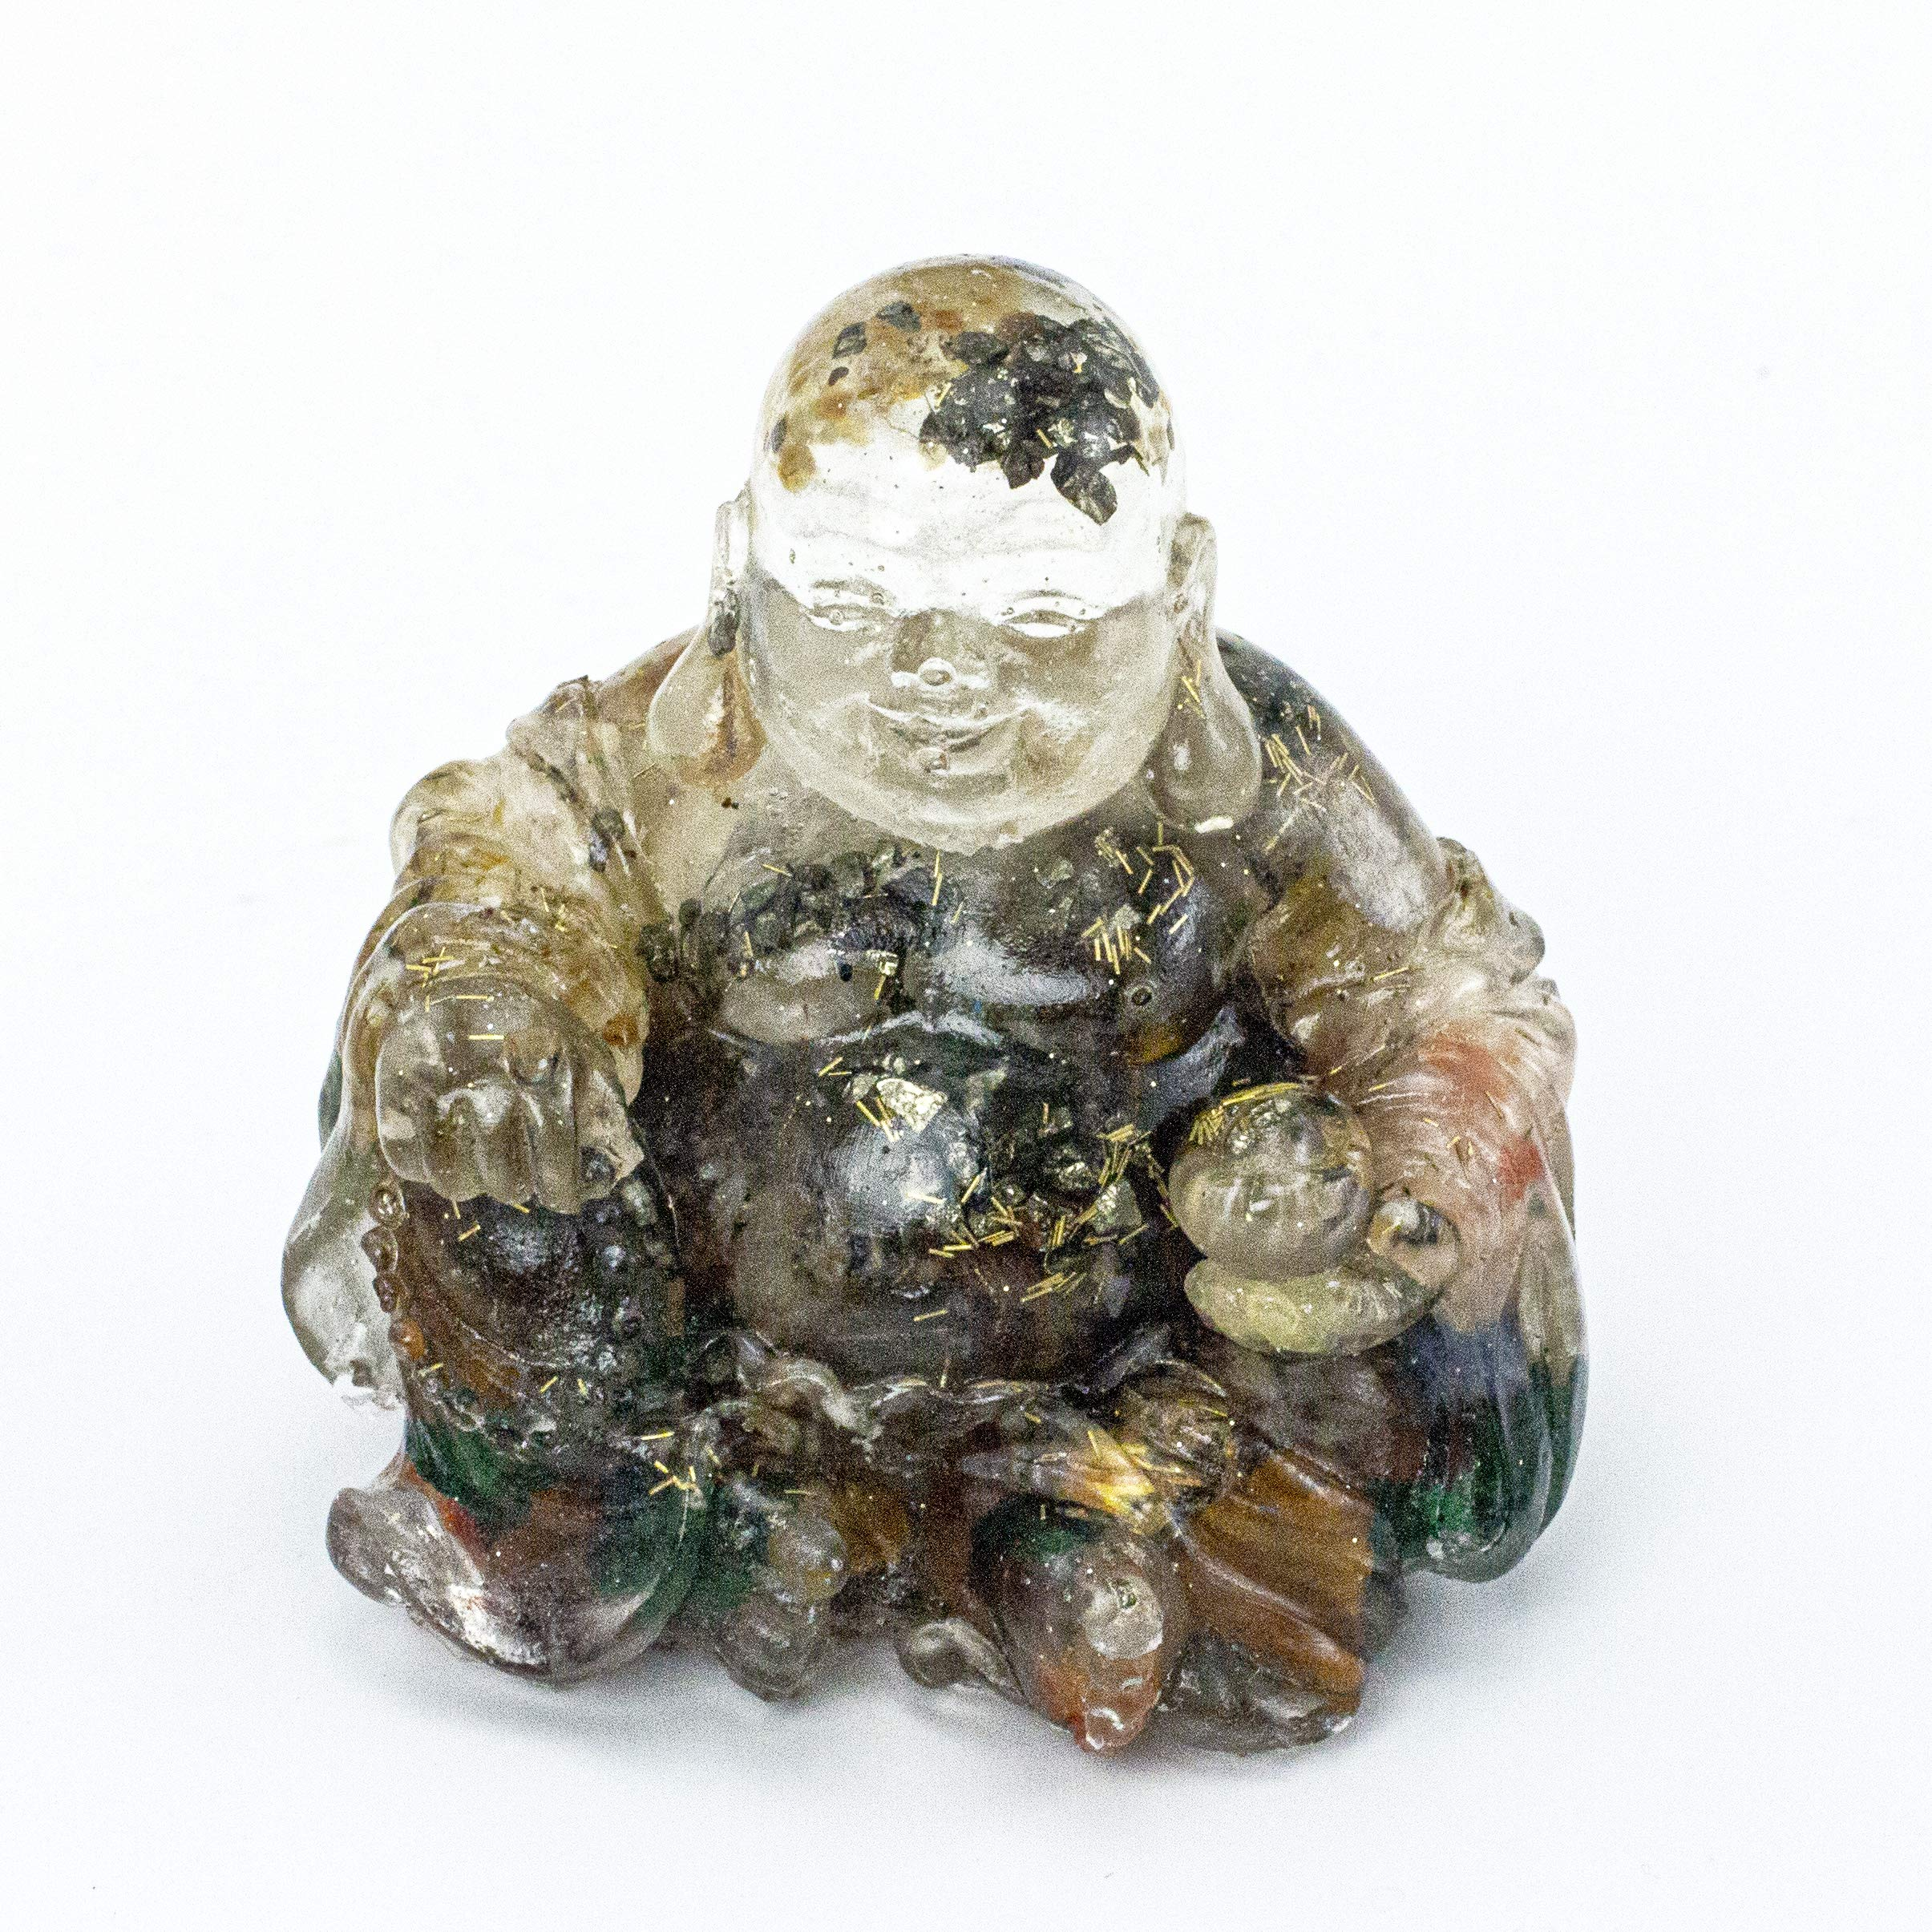 Energy Filled Crystal Laughing Buddha Resin and Embedded Crystals Manifestation Metaphysical Properties #87